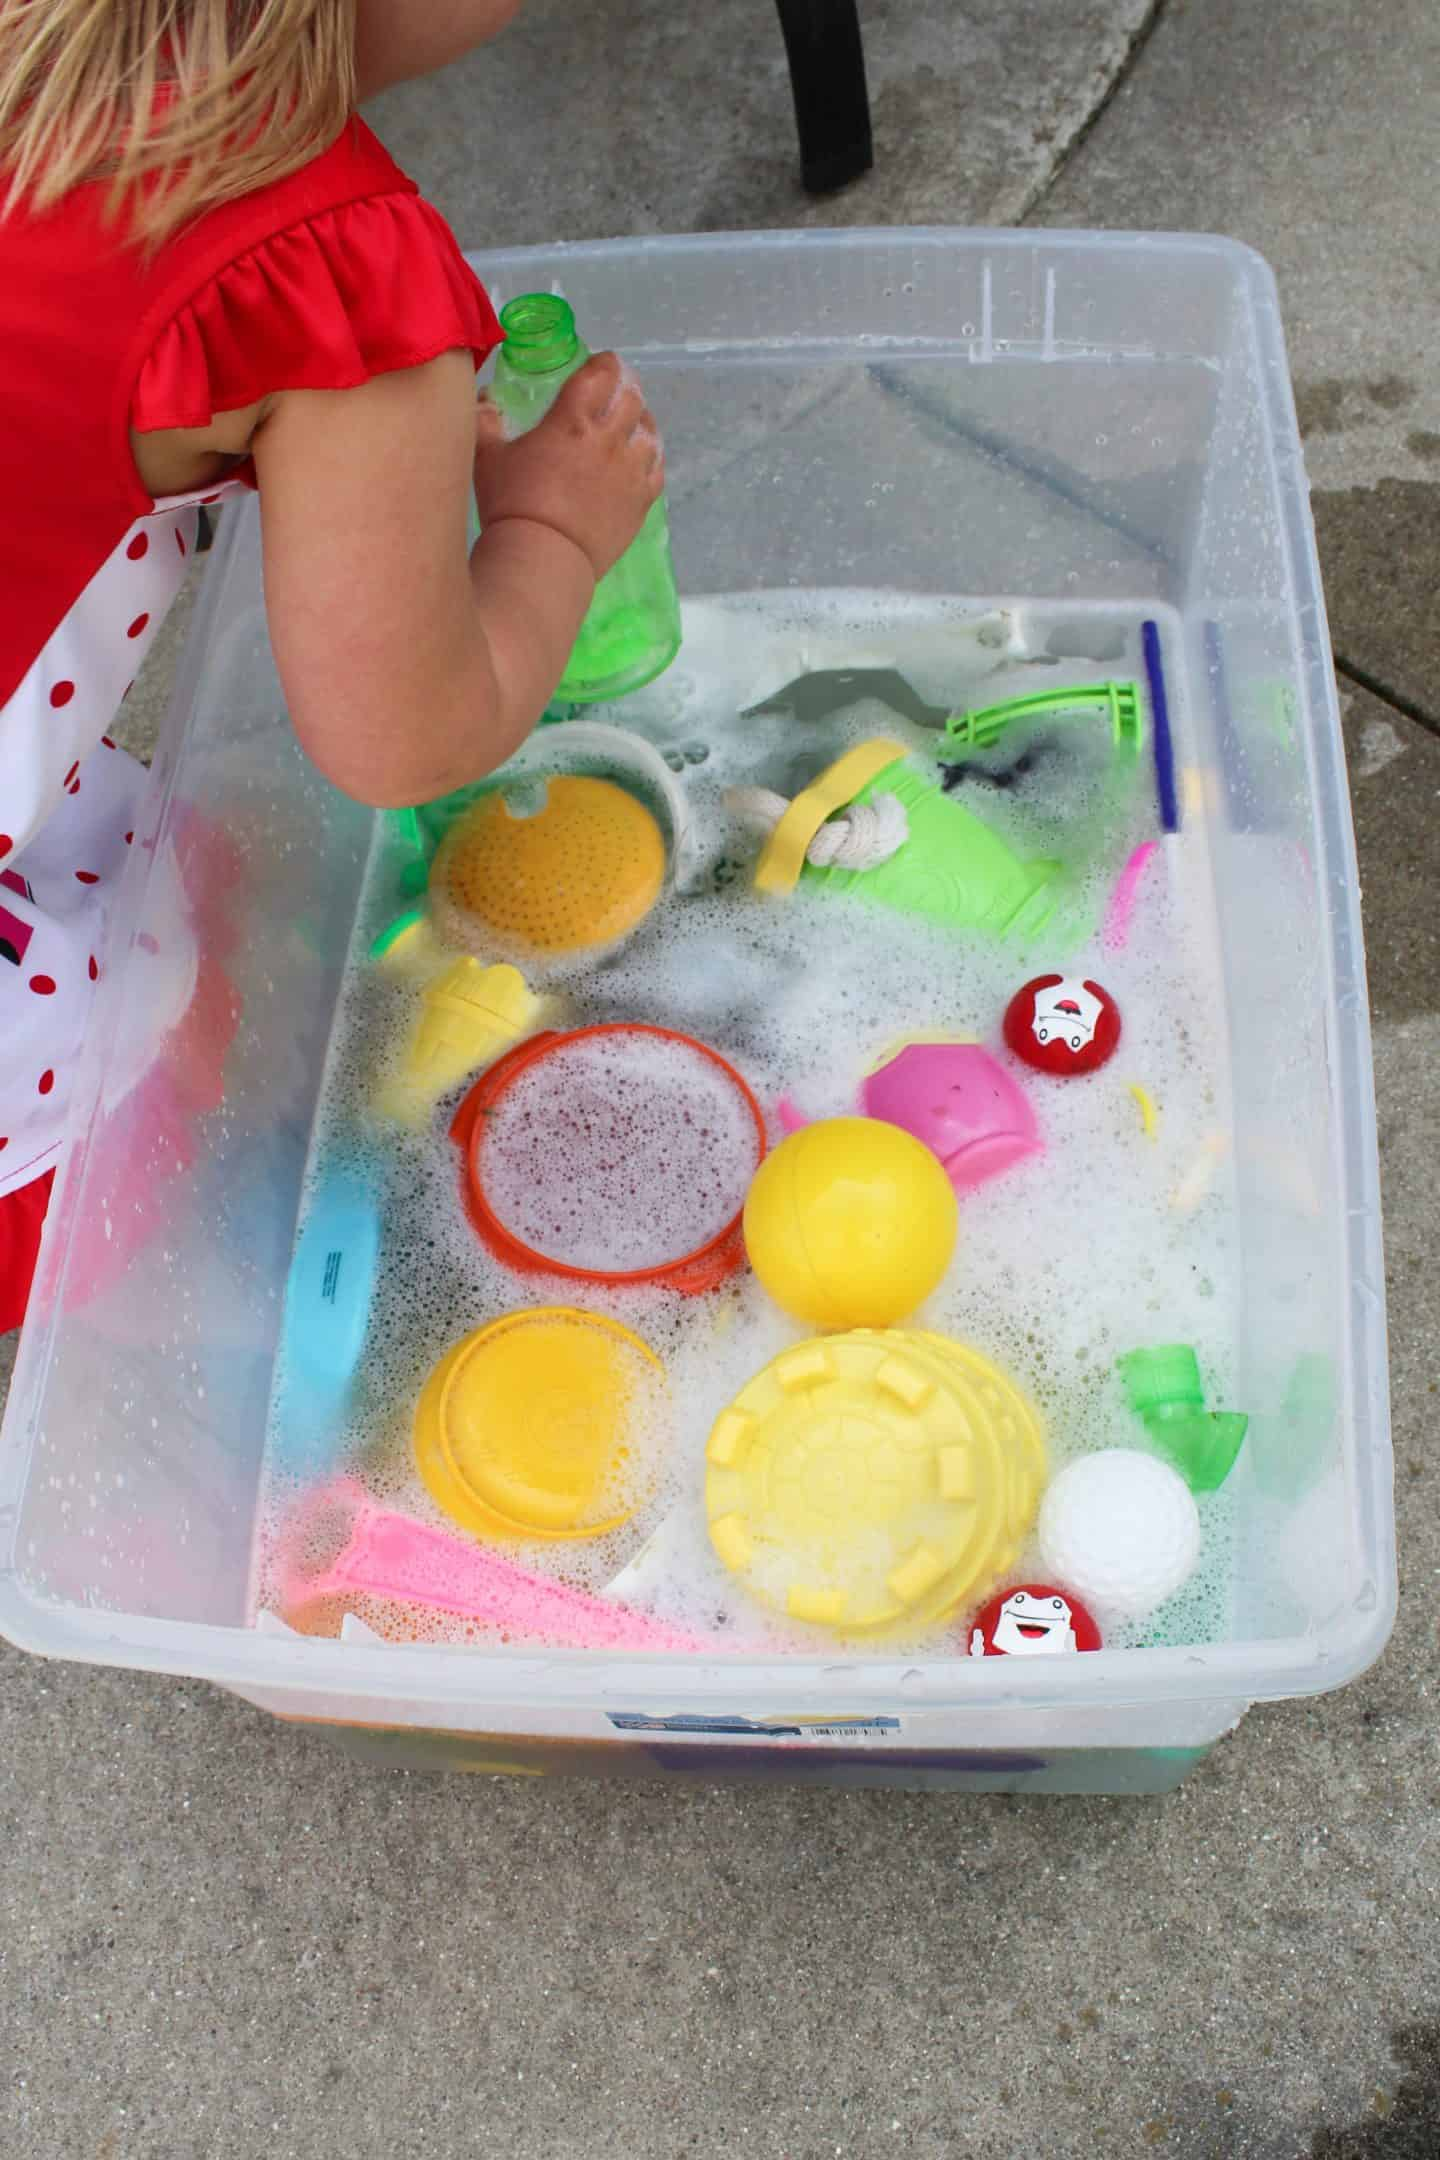 Water play ideas for preschool aged children using sensory bins. Add bubbles to a water table and have your preschooler do the dishes #preschoolactivity #waterplay